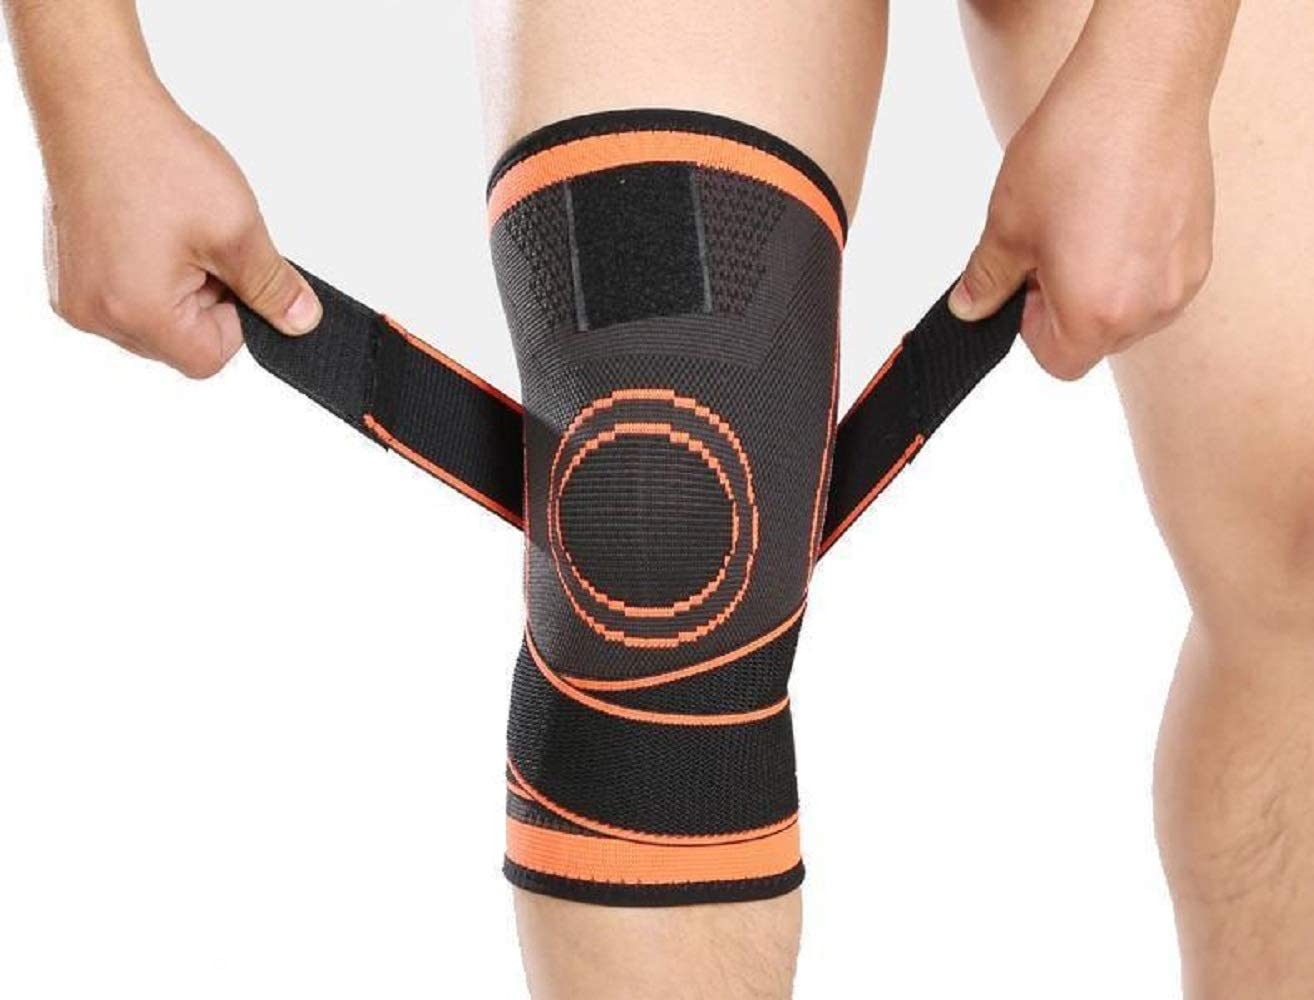 Compression Knee Sleeve Knee Brace for Men & Women Knee Support for Running, ACF Crossfit, Basketball, Pain Relief, Meniscus Tear Arthritis ACL MCL Faster Recovery Adjustable Strap Single Wrap